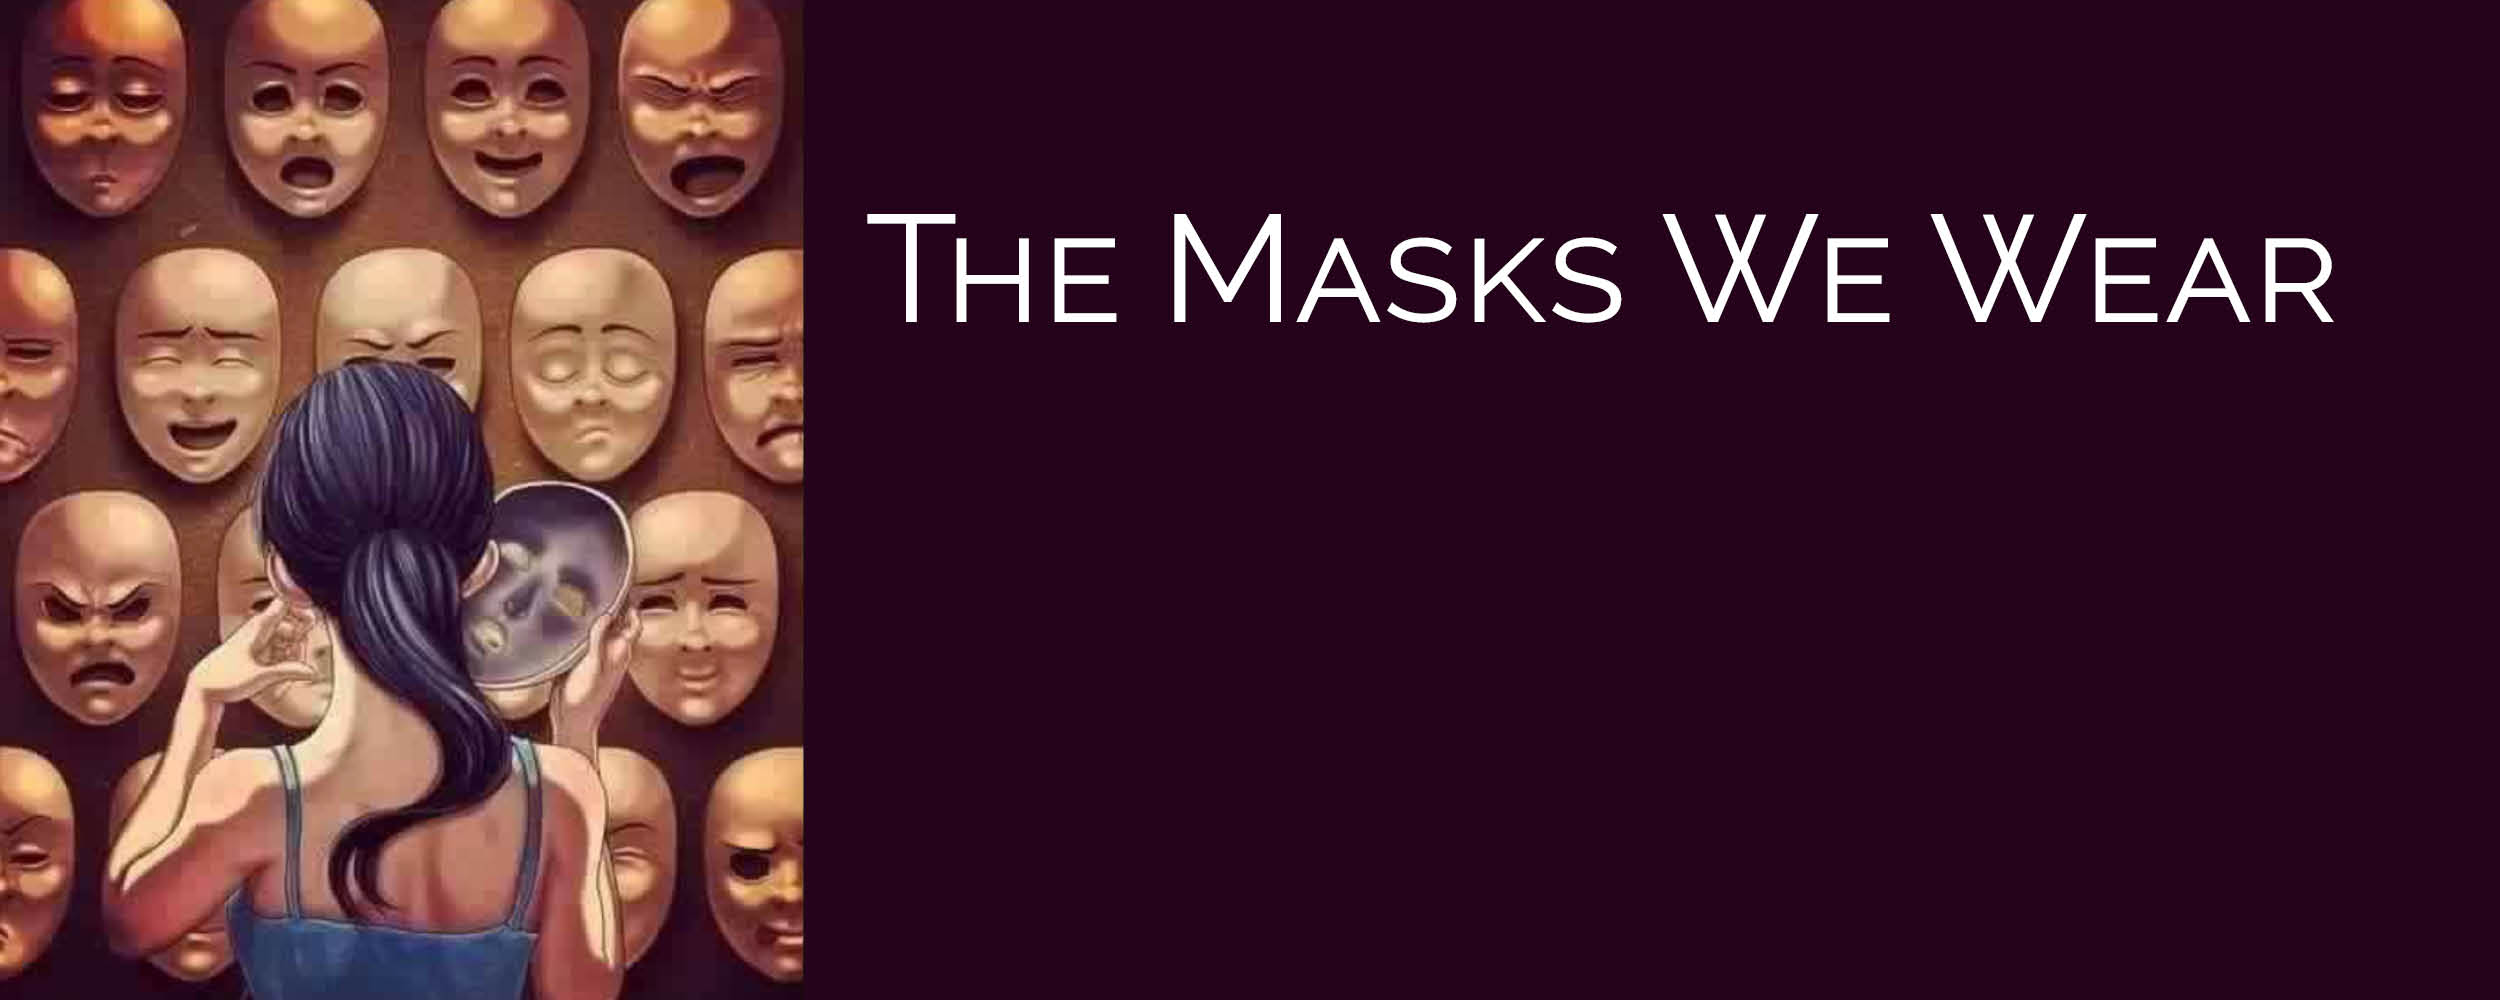 The Masks We Wear, Children's Message